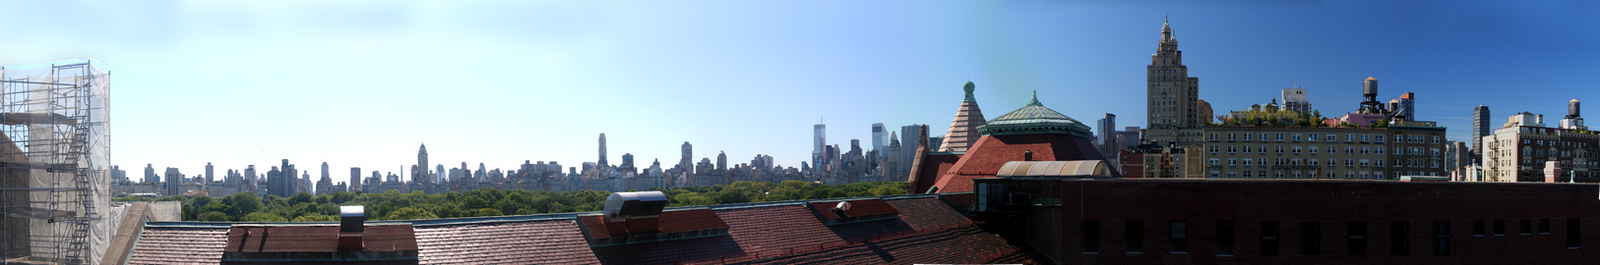 NYC Skyline Panorama by aileen